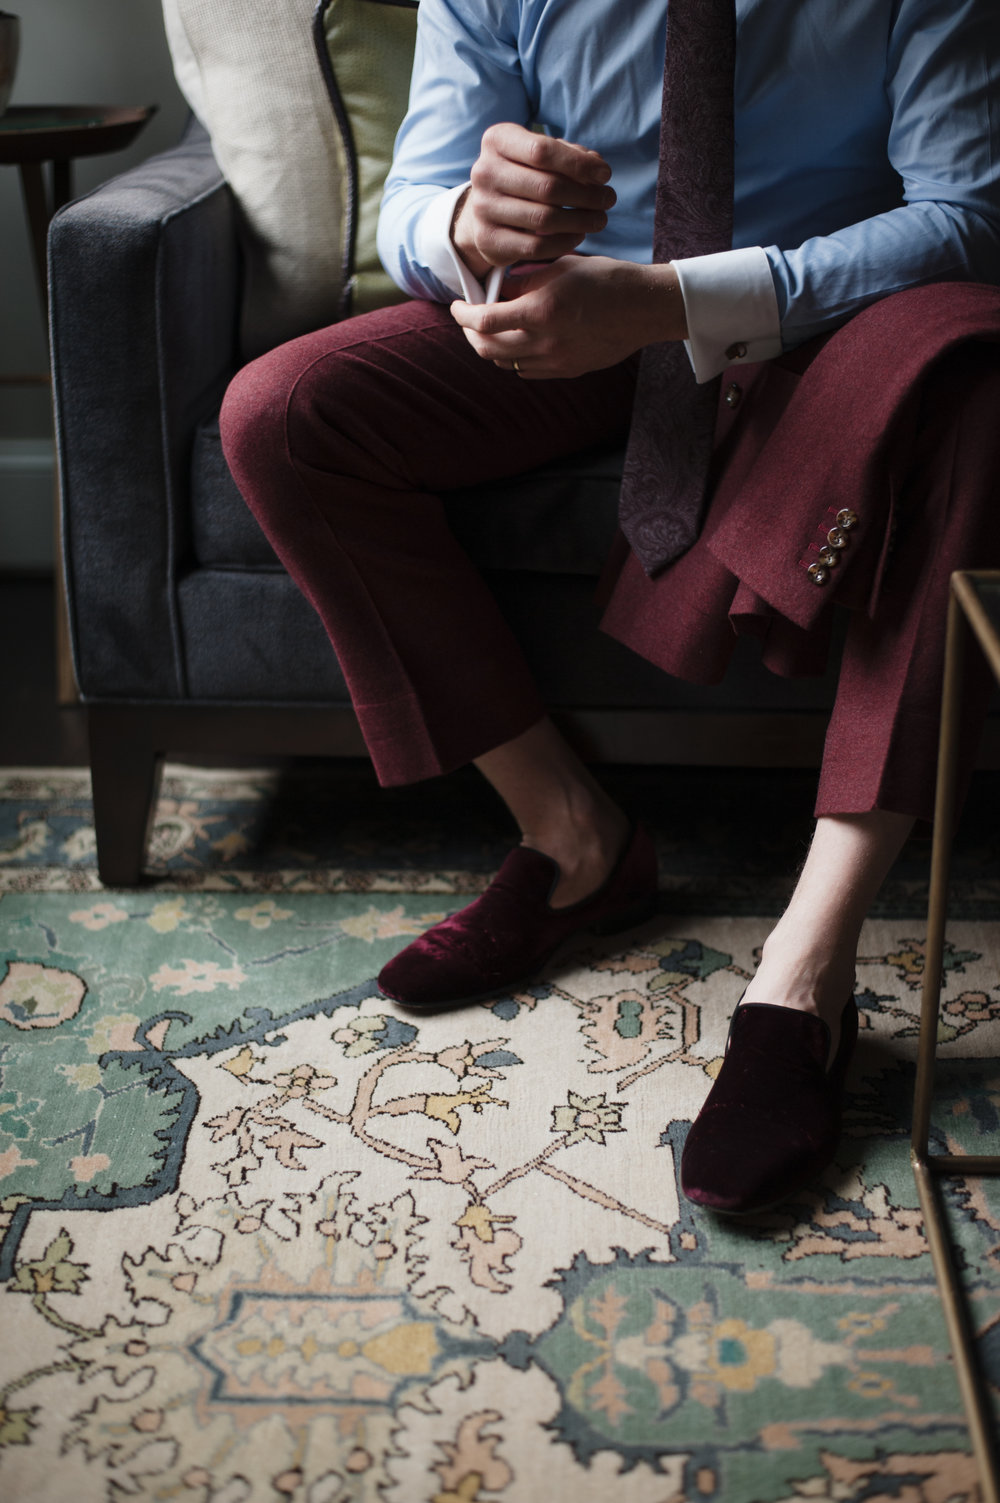 bespoke loafers with Burgundy bespoke slacks